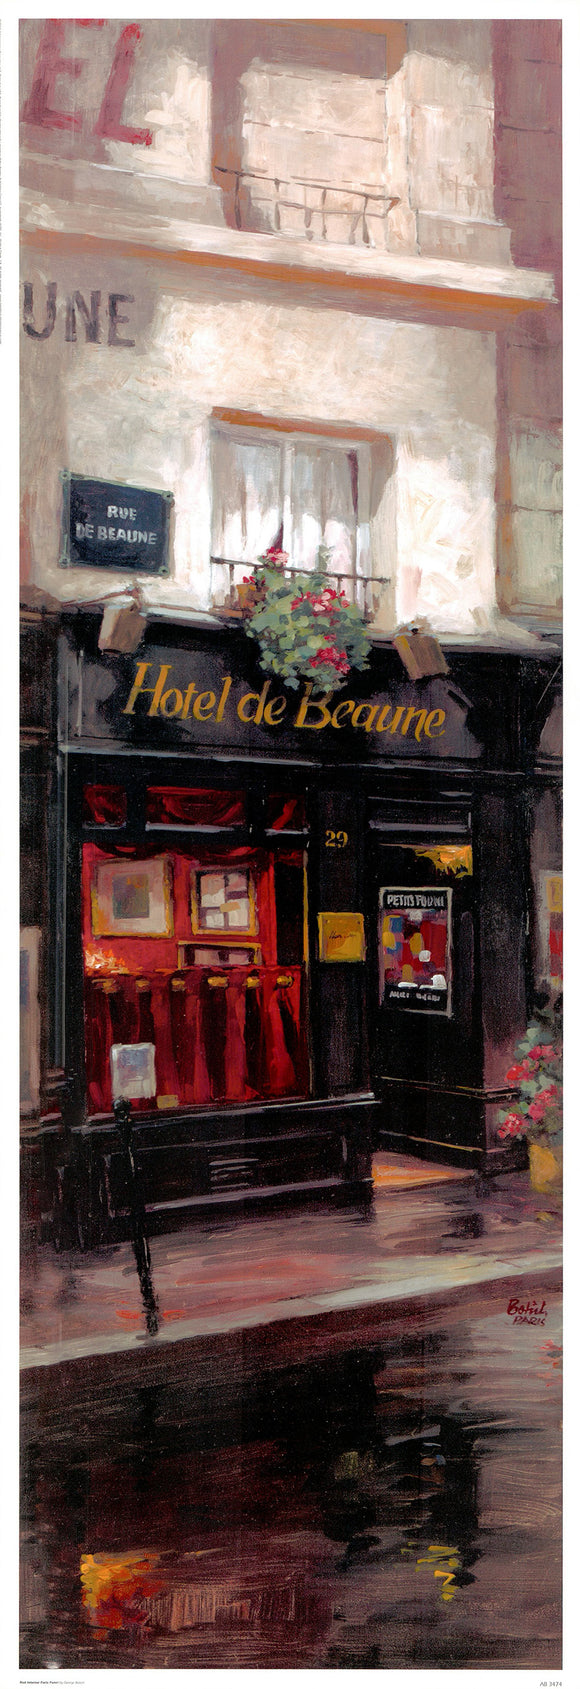 Red Interior Paris Panel by George Botich - 13 X 37 Inches (Poster)